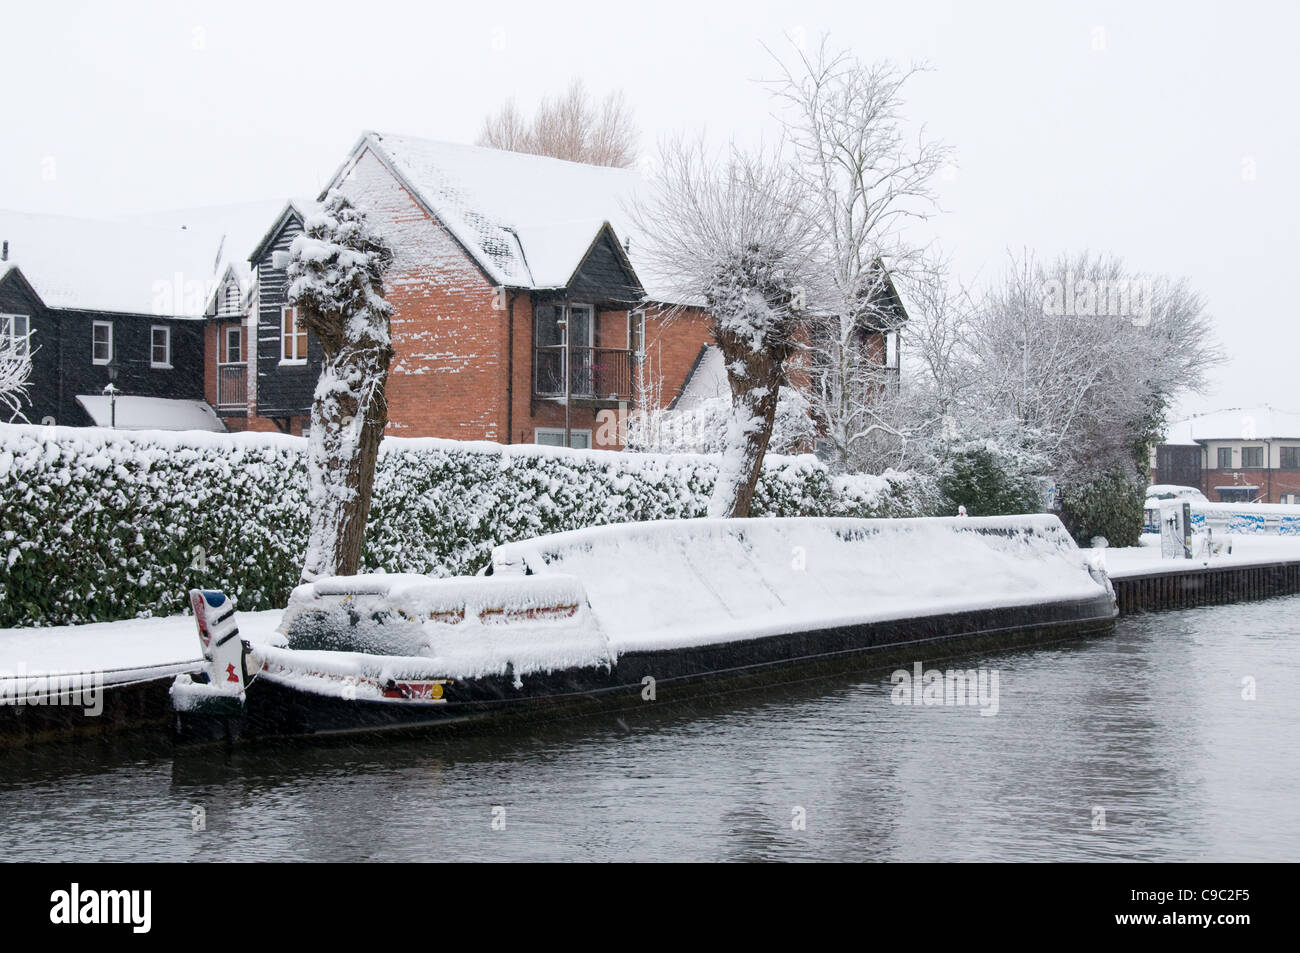 Snow comes to the Kennet & Avon canal at Newbury - Stock Image